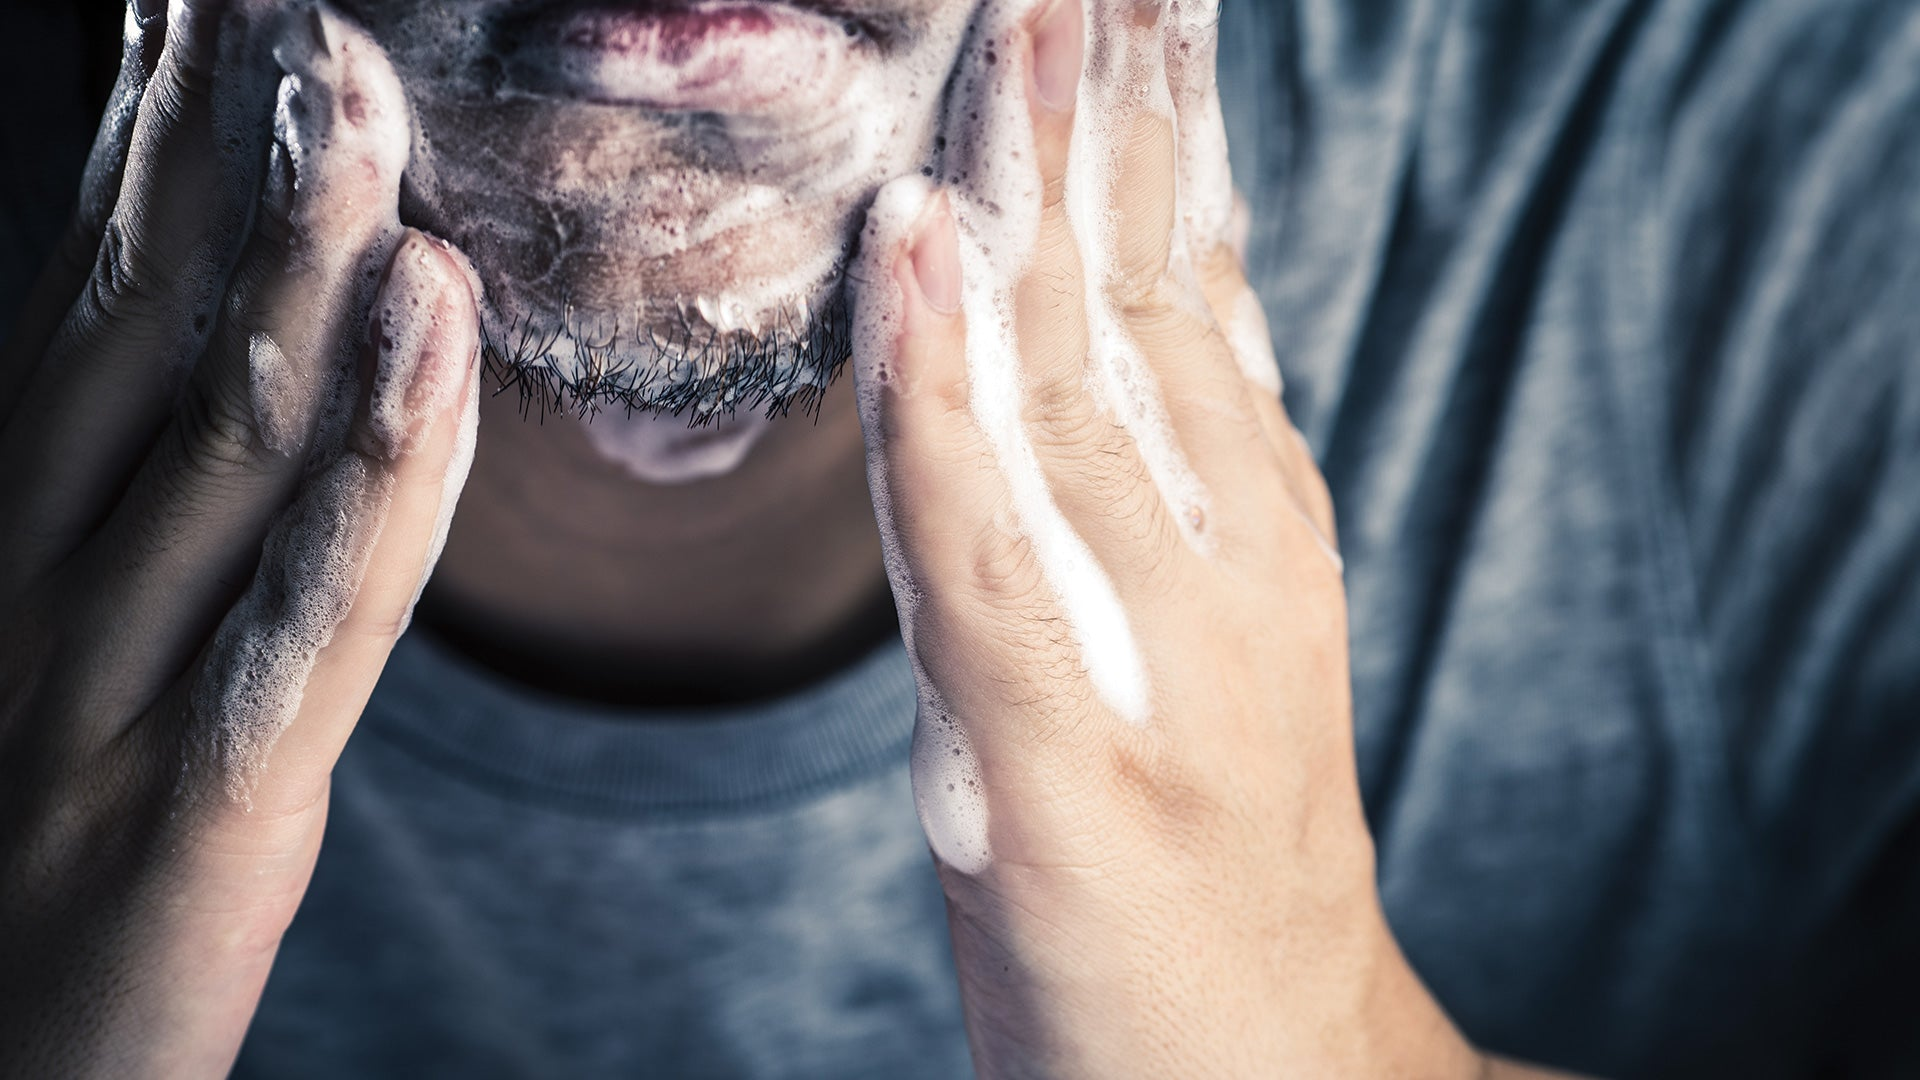 Wash beard regularly - Beard Grooming Tips for men